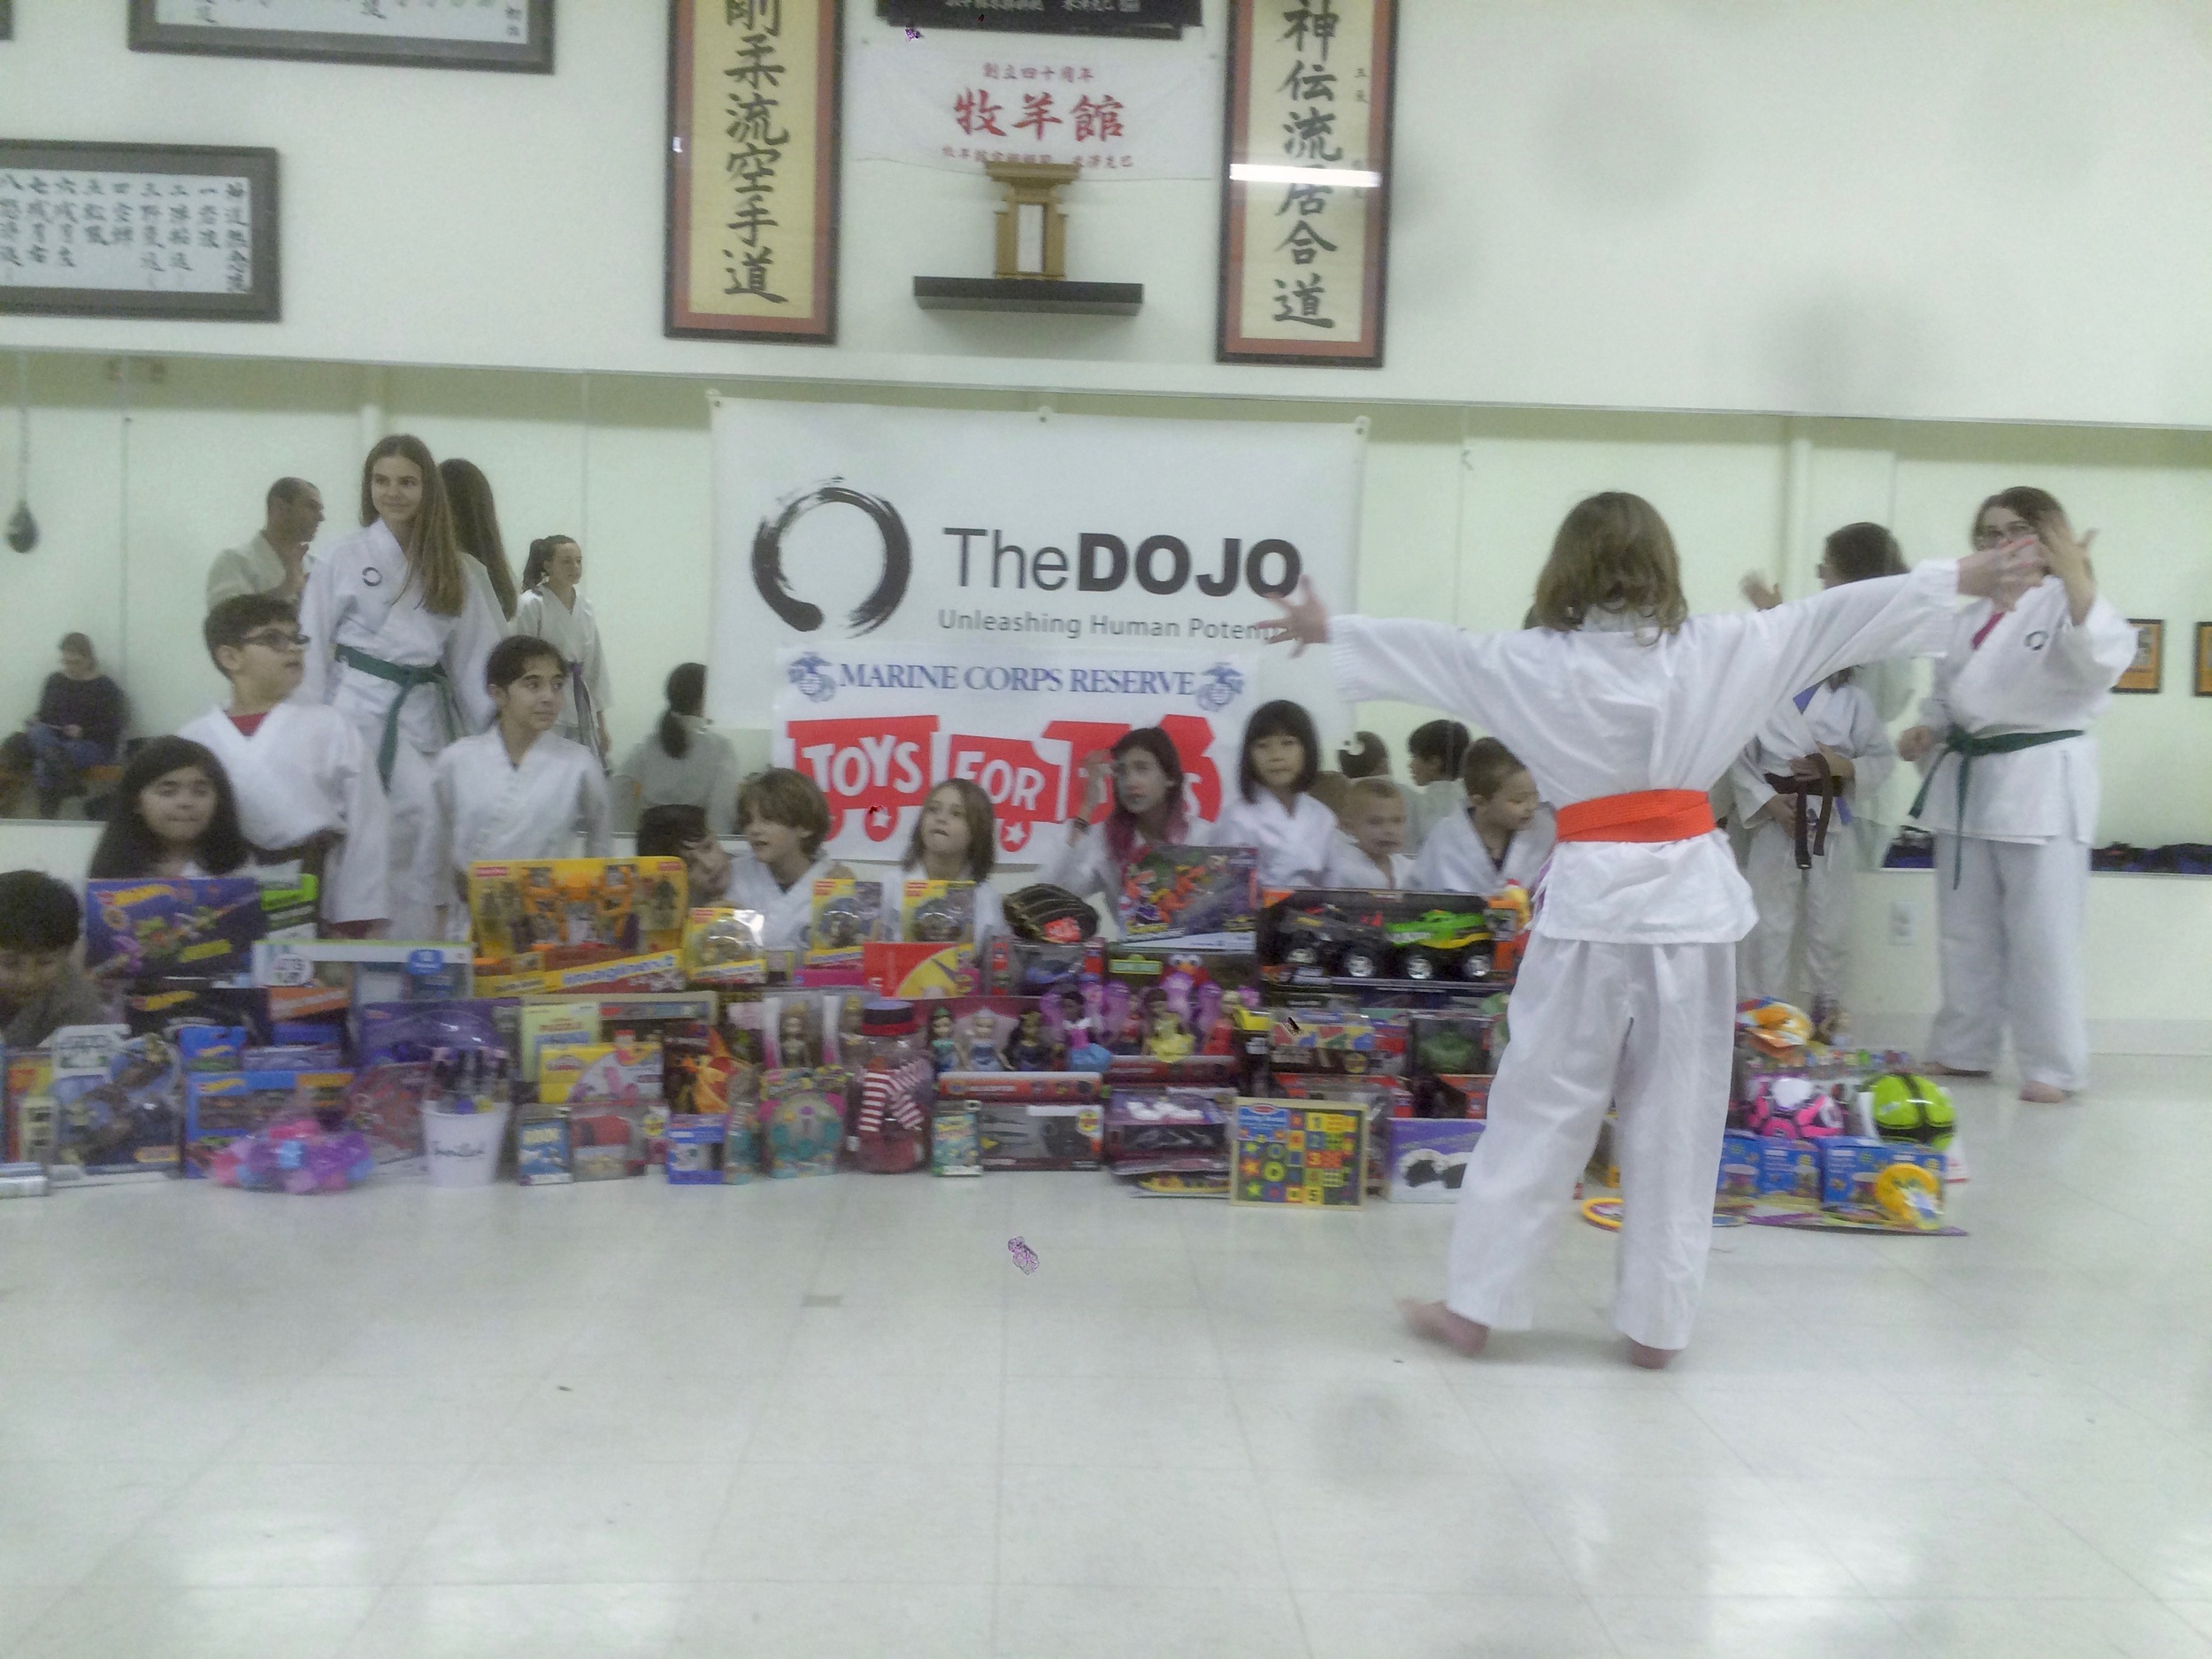 toys-for-tots---thedojo-toy-drive_23803716016_o.jpg